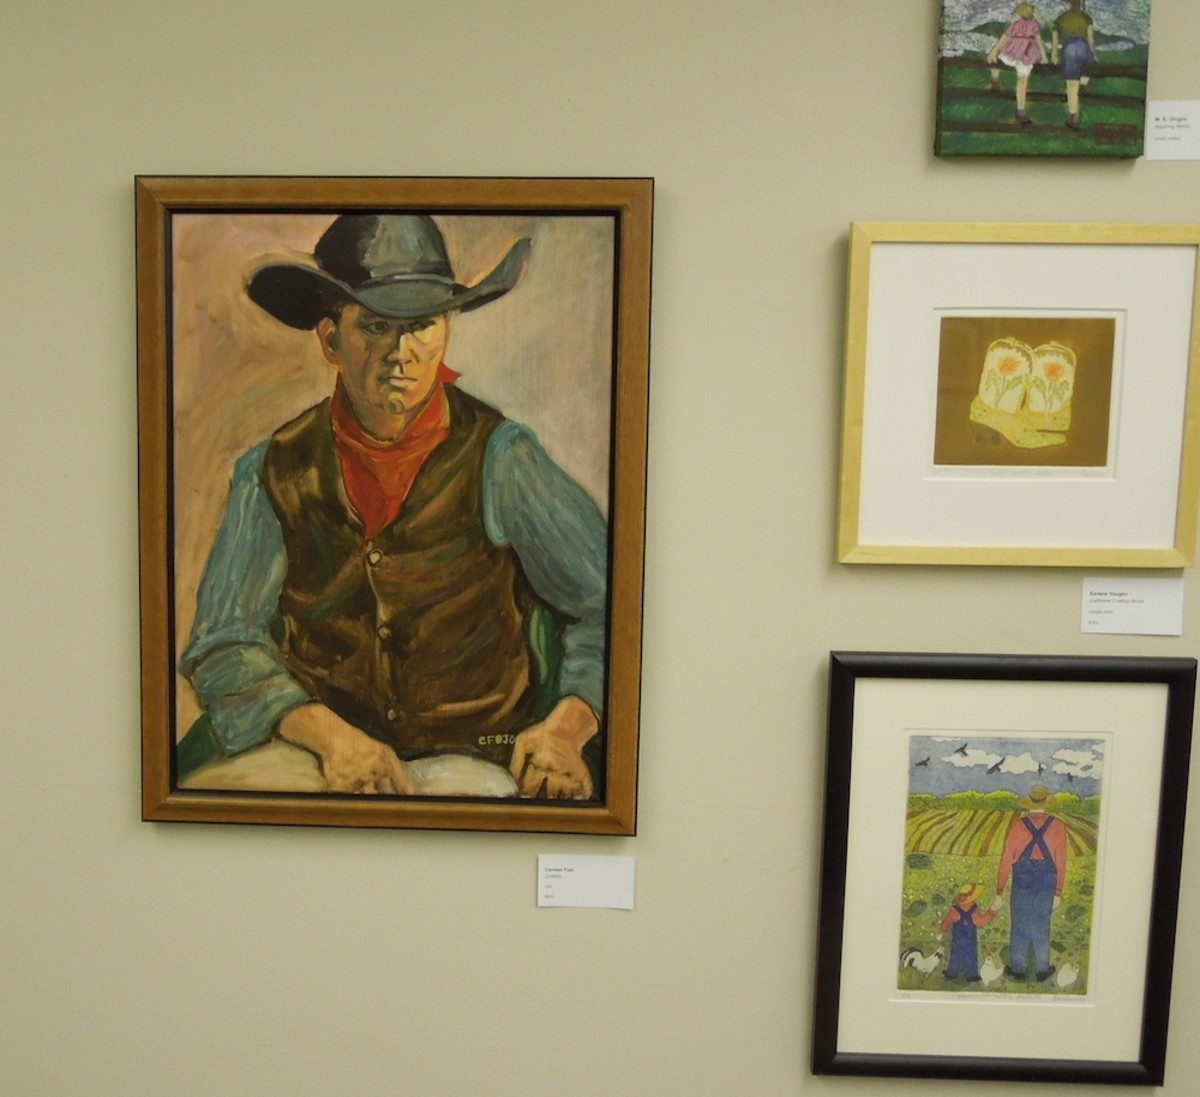 """I call this the western wall. The two paintings above were also on it. To the left is """"Cowboy"""" by Carmen Fojo, in oils. At the lower right is """"Grandfather's Fields"""" by Earlene Vaughn, intaglio print."""